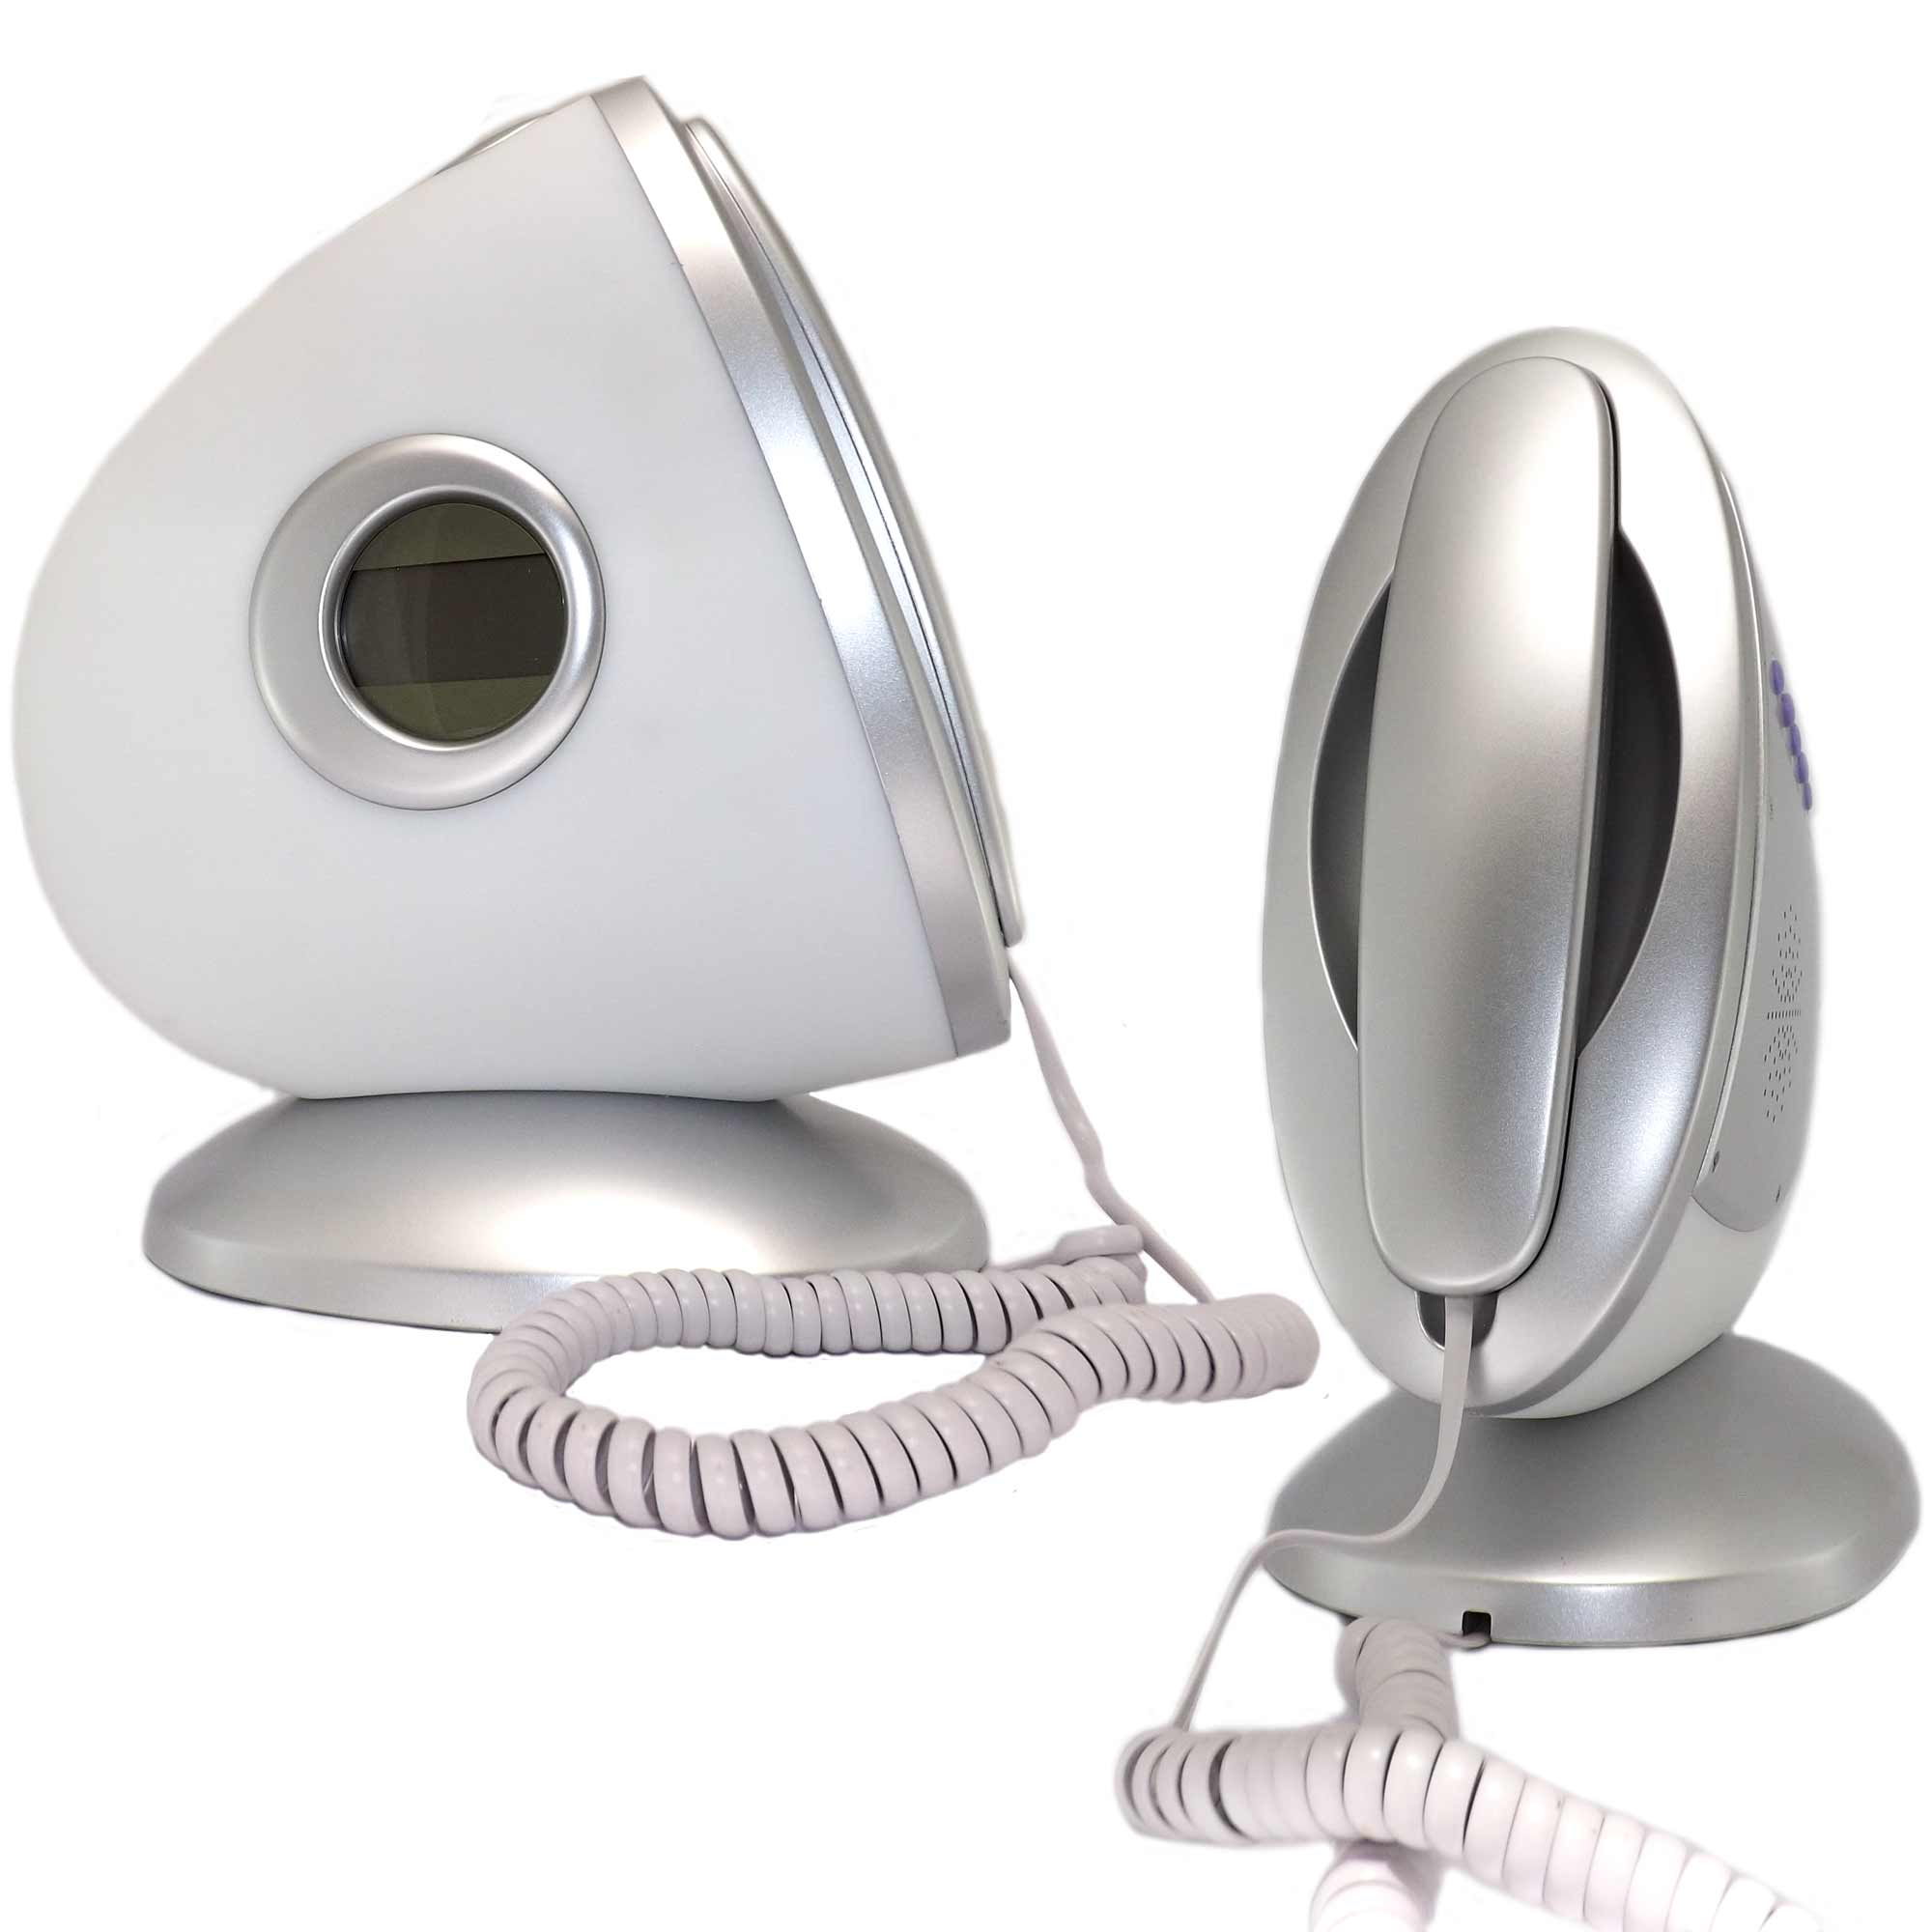 LANDLINE TELEPHONE MULTIFUNCTIONAL HOME OR OFFICE MODERN DESIGN BACKLIGHT WITH WIRE